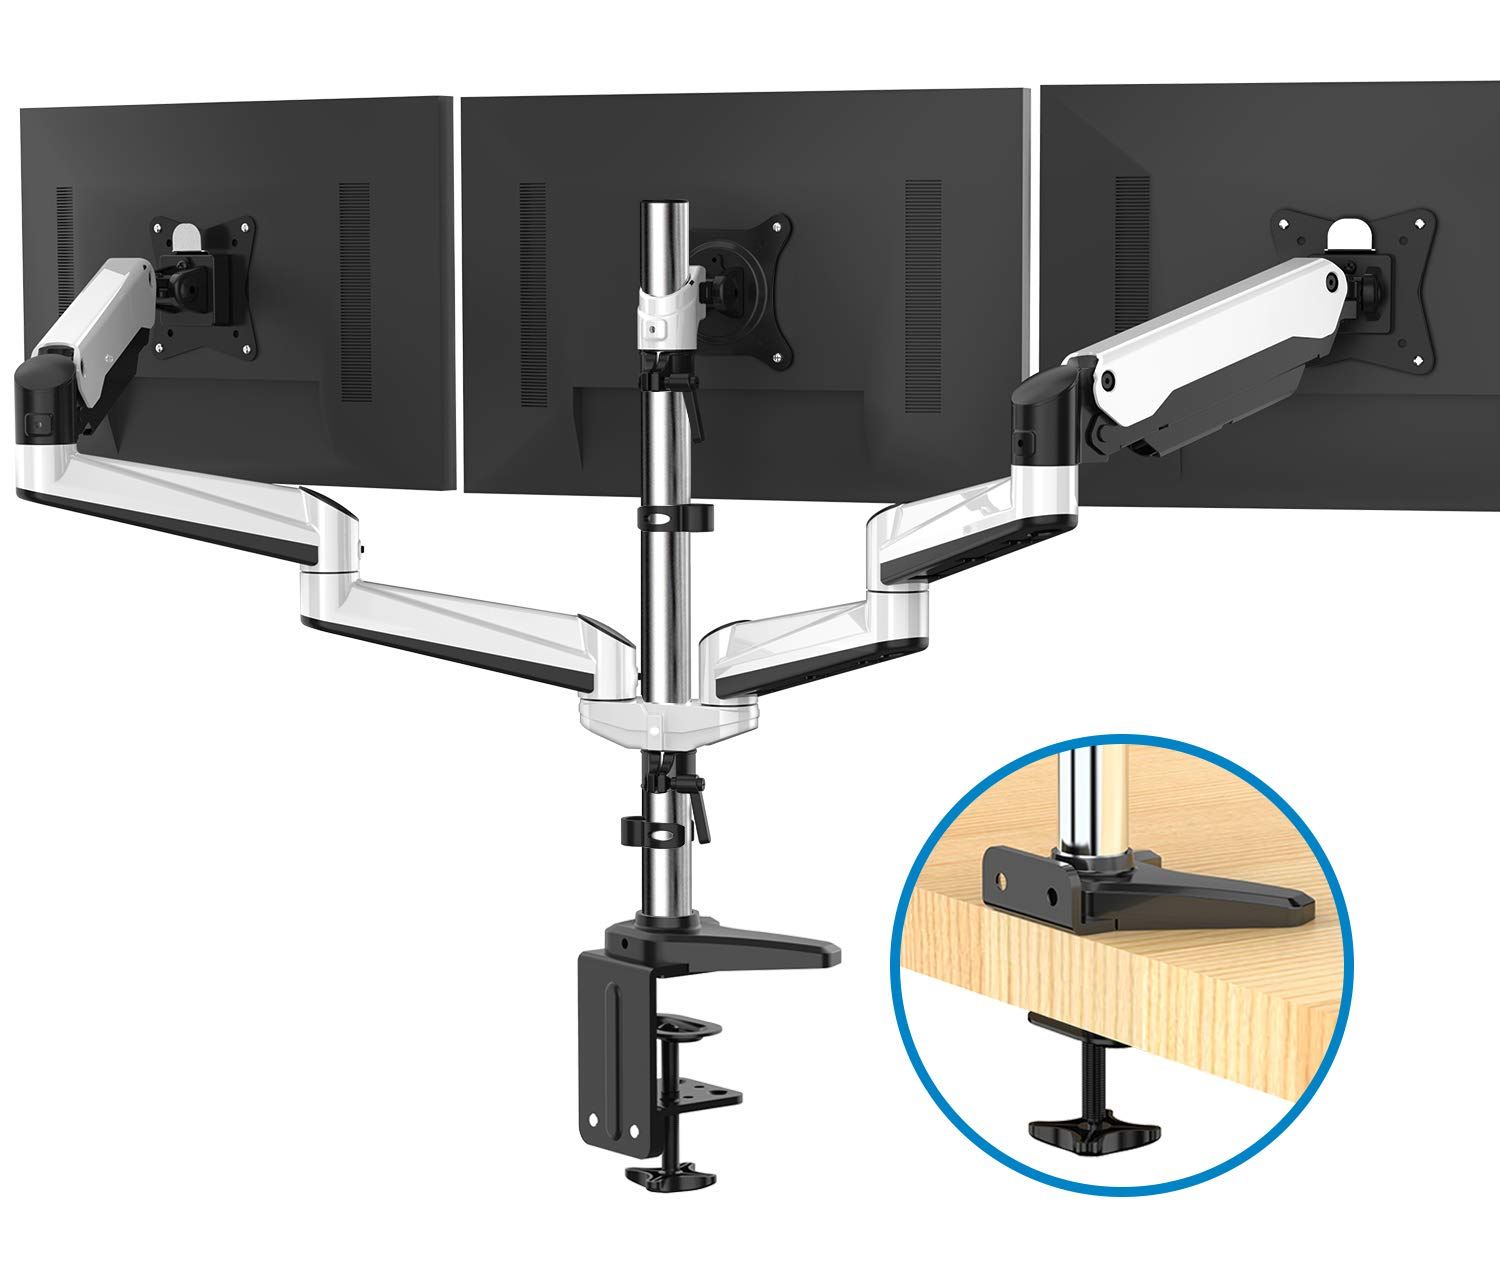 Triple Monitor Stand - Full Motion Articulating Aluminum Gas Spring Monitor Mount Fit Three 17 to 32 inch LCD Computer Screens with Clamp, Grommet Kit by HUANUO